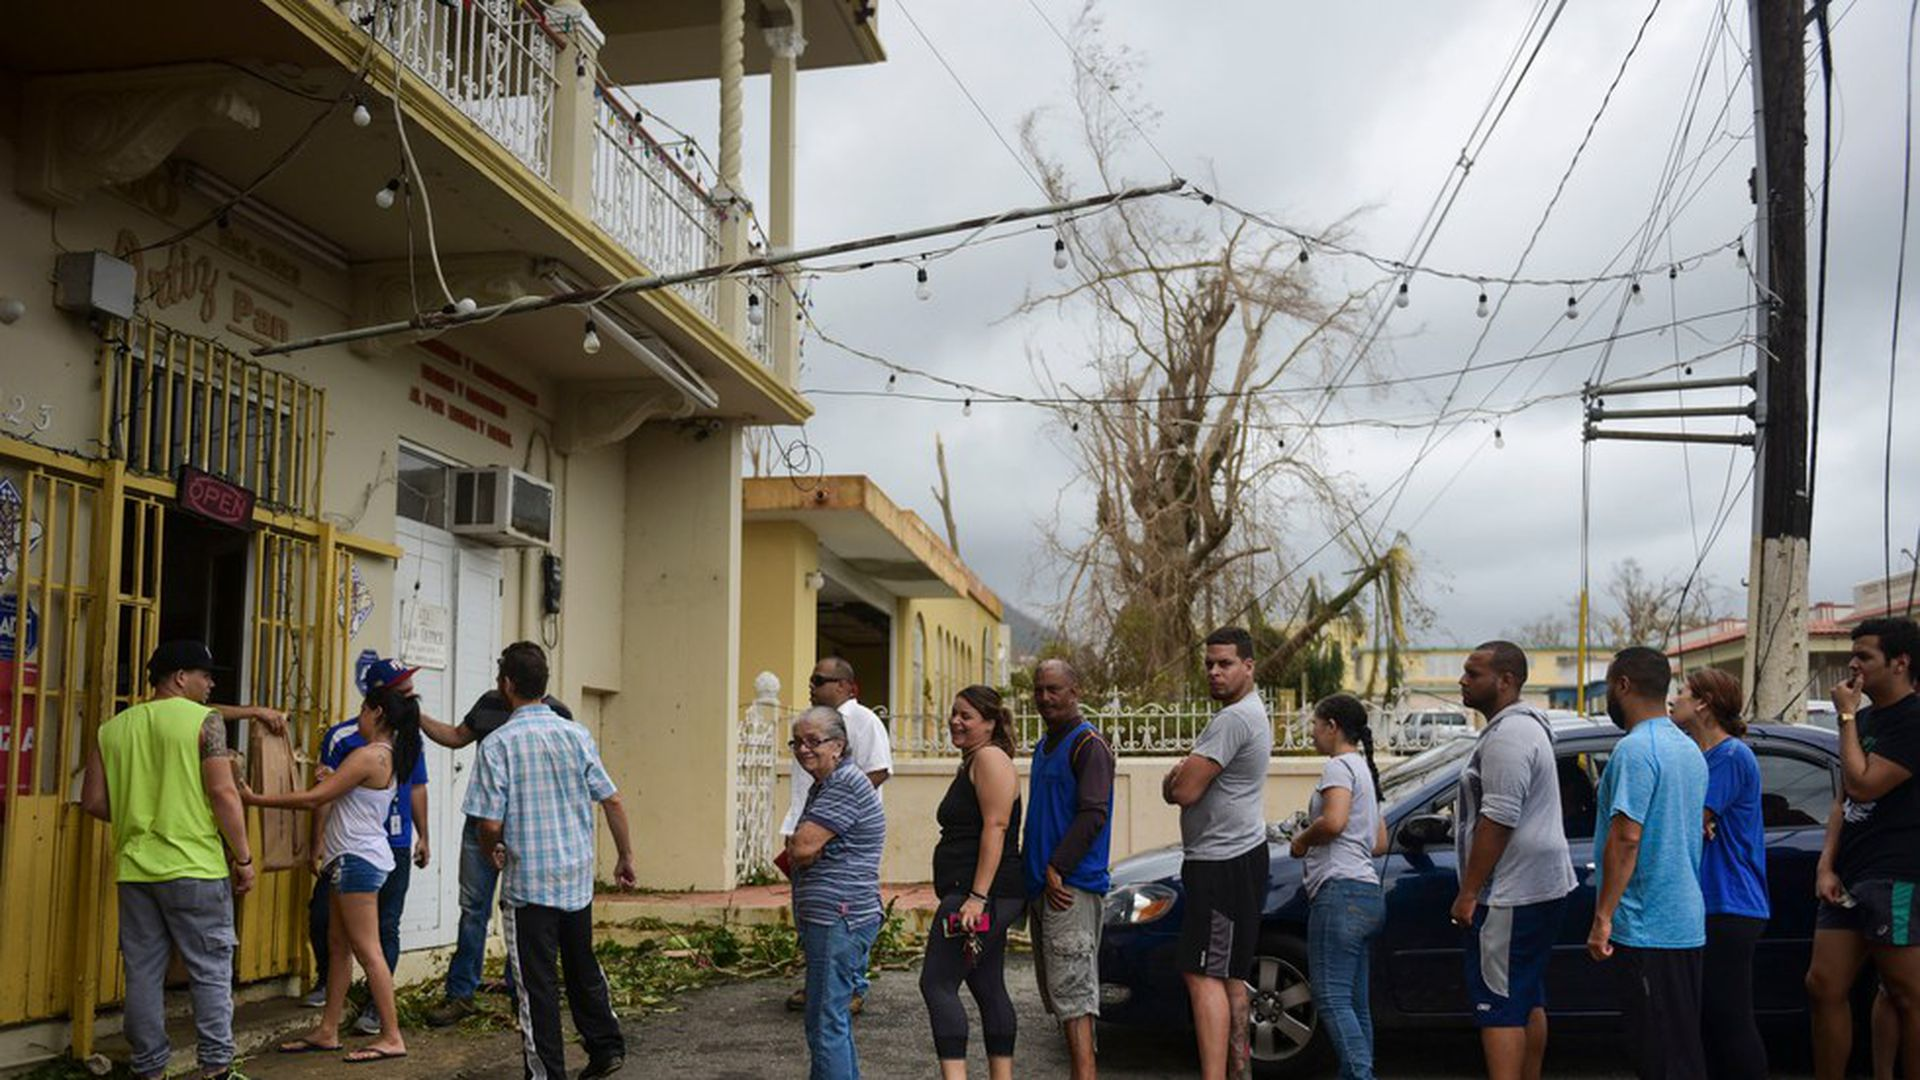 Puerto Rico's hurricane recovery will take years